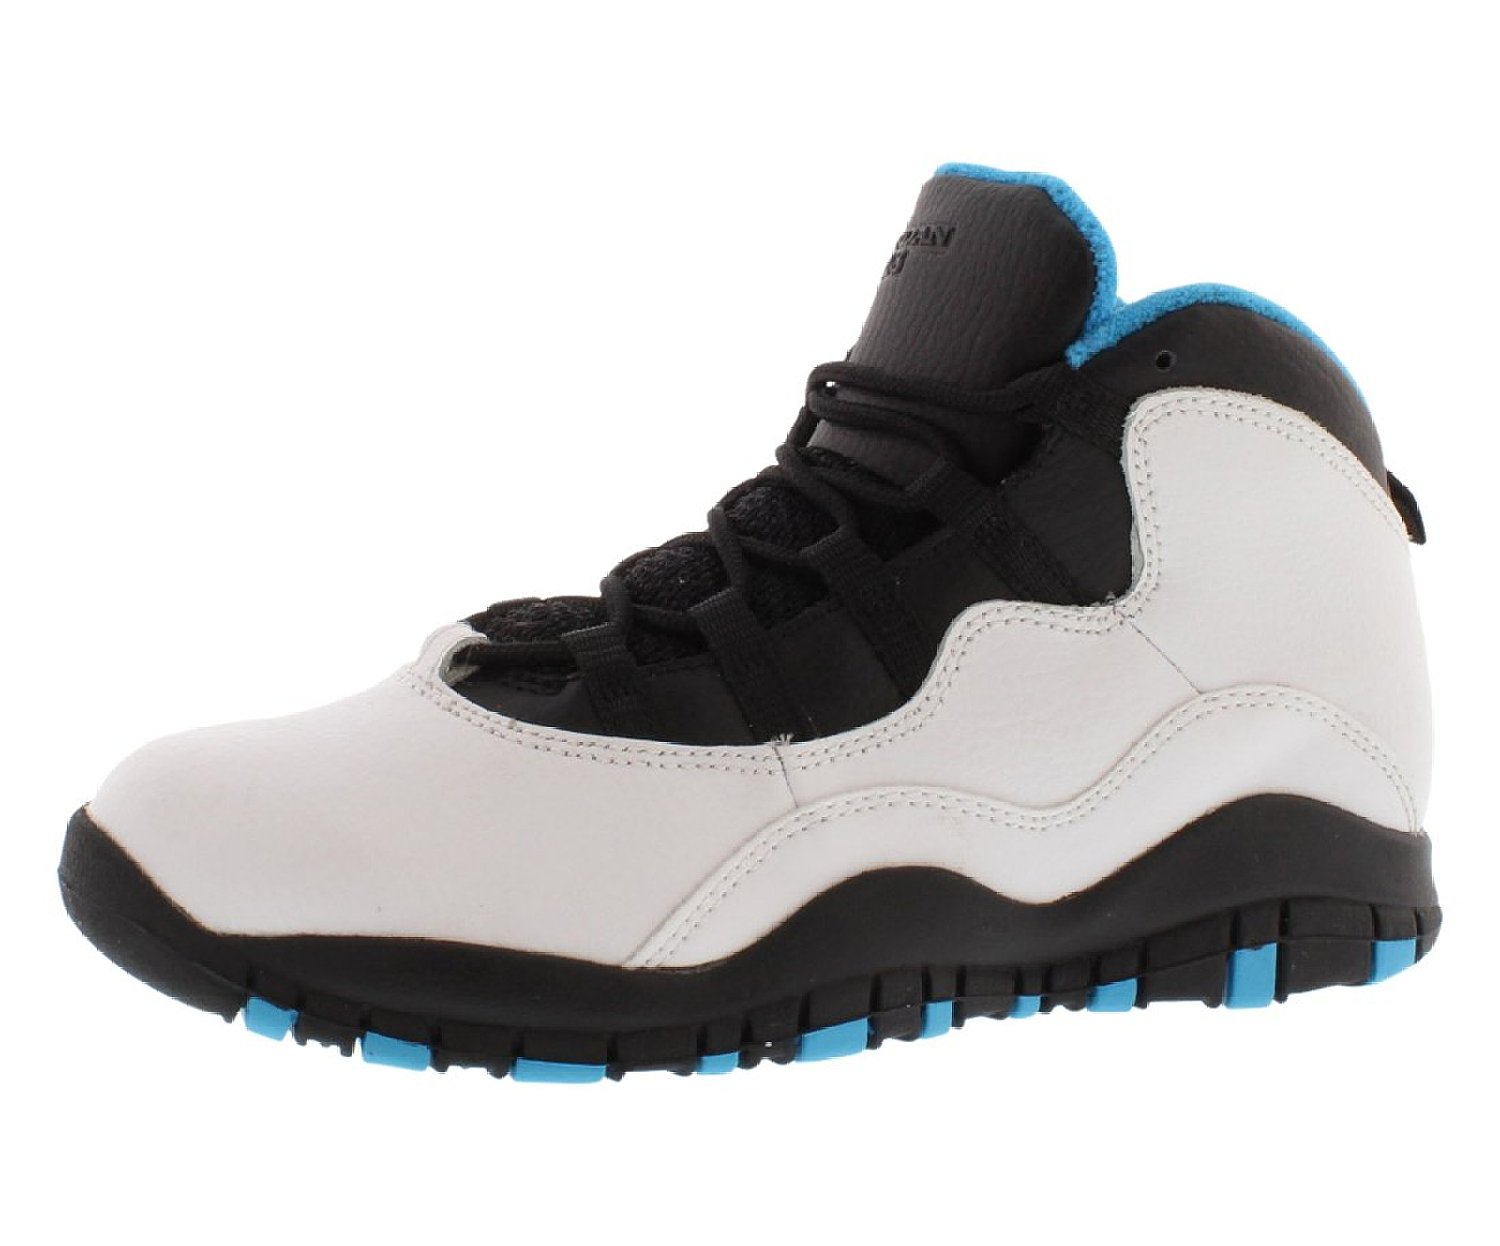 b3e54203cb8d Get Quotations · Jordan Pre School Retro 10 (Ps) White Dark Powder Blue- Black 310807